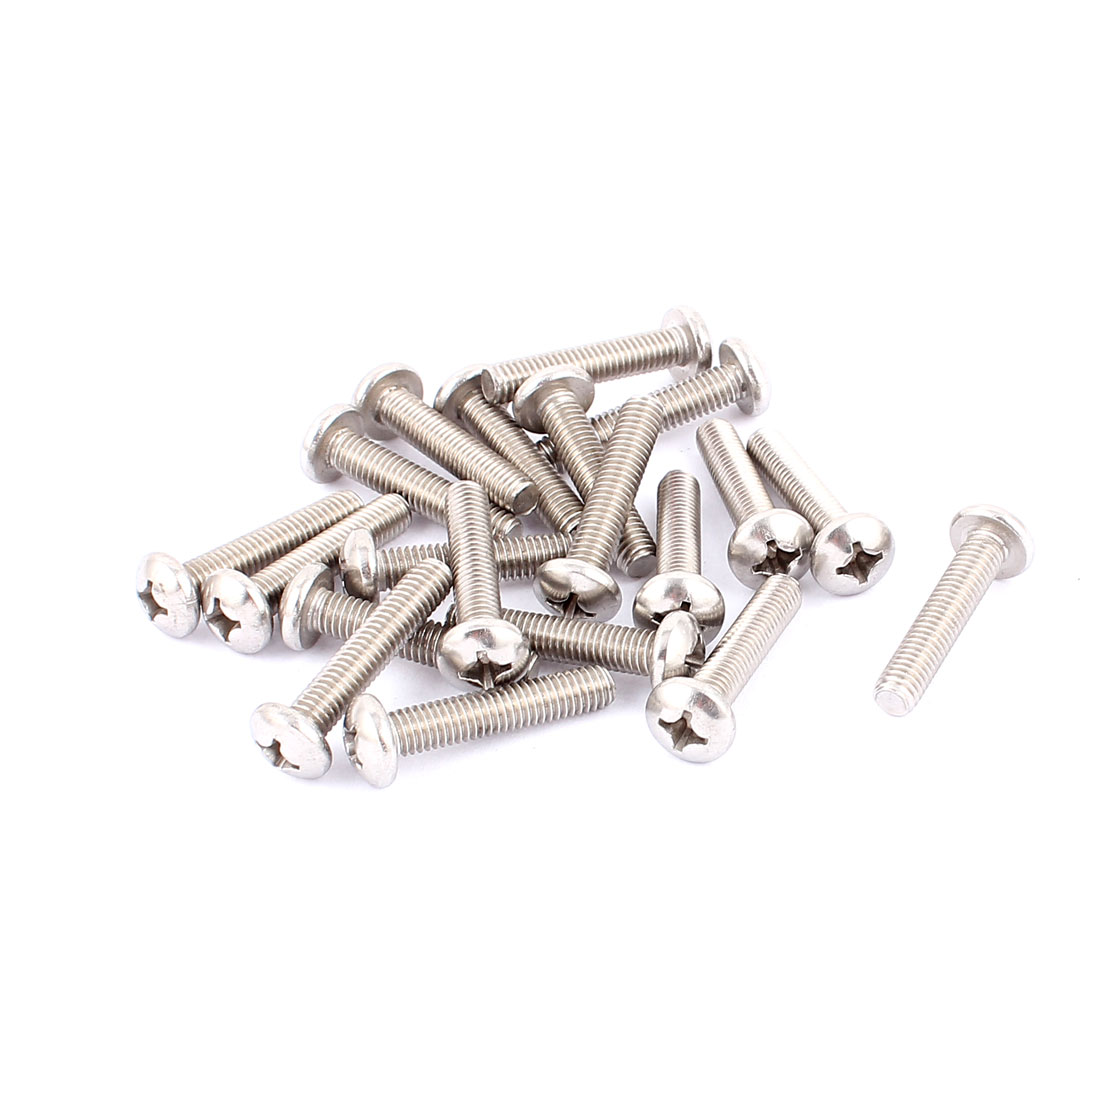 M6x30mm Cross Round Head Phillips Screws Fasteners Silver Tone 20pcs